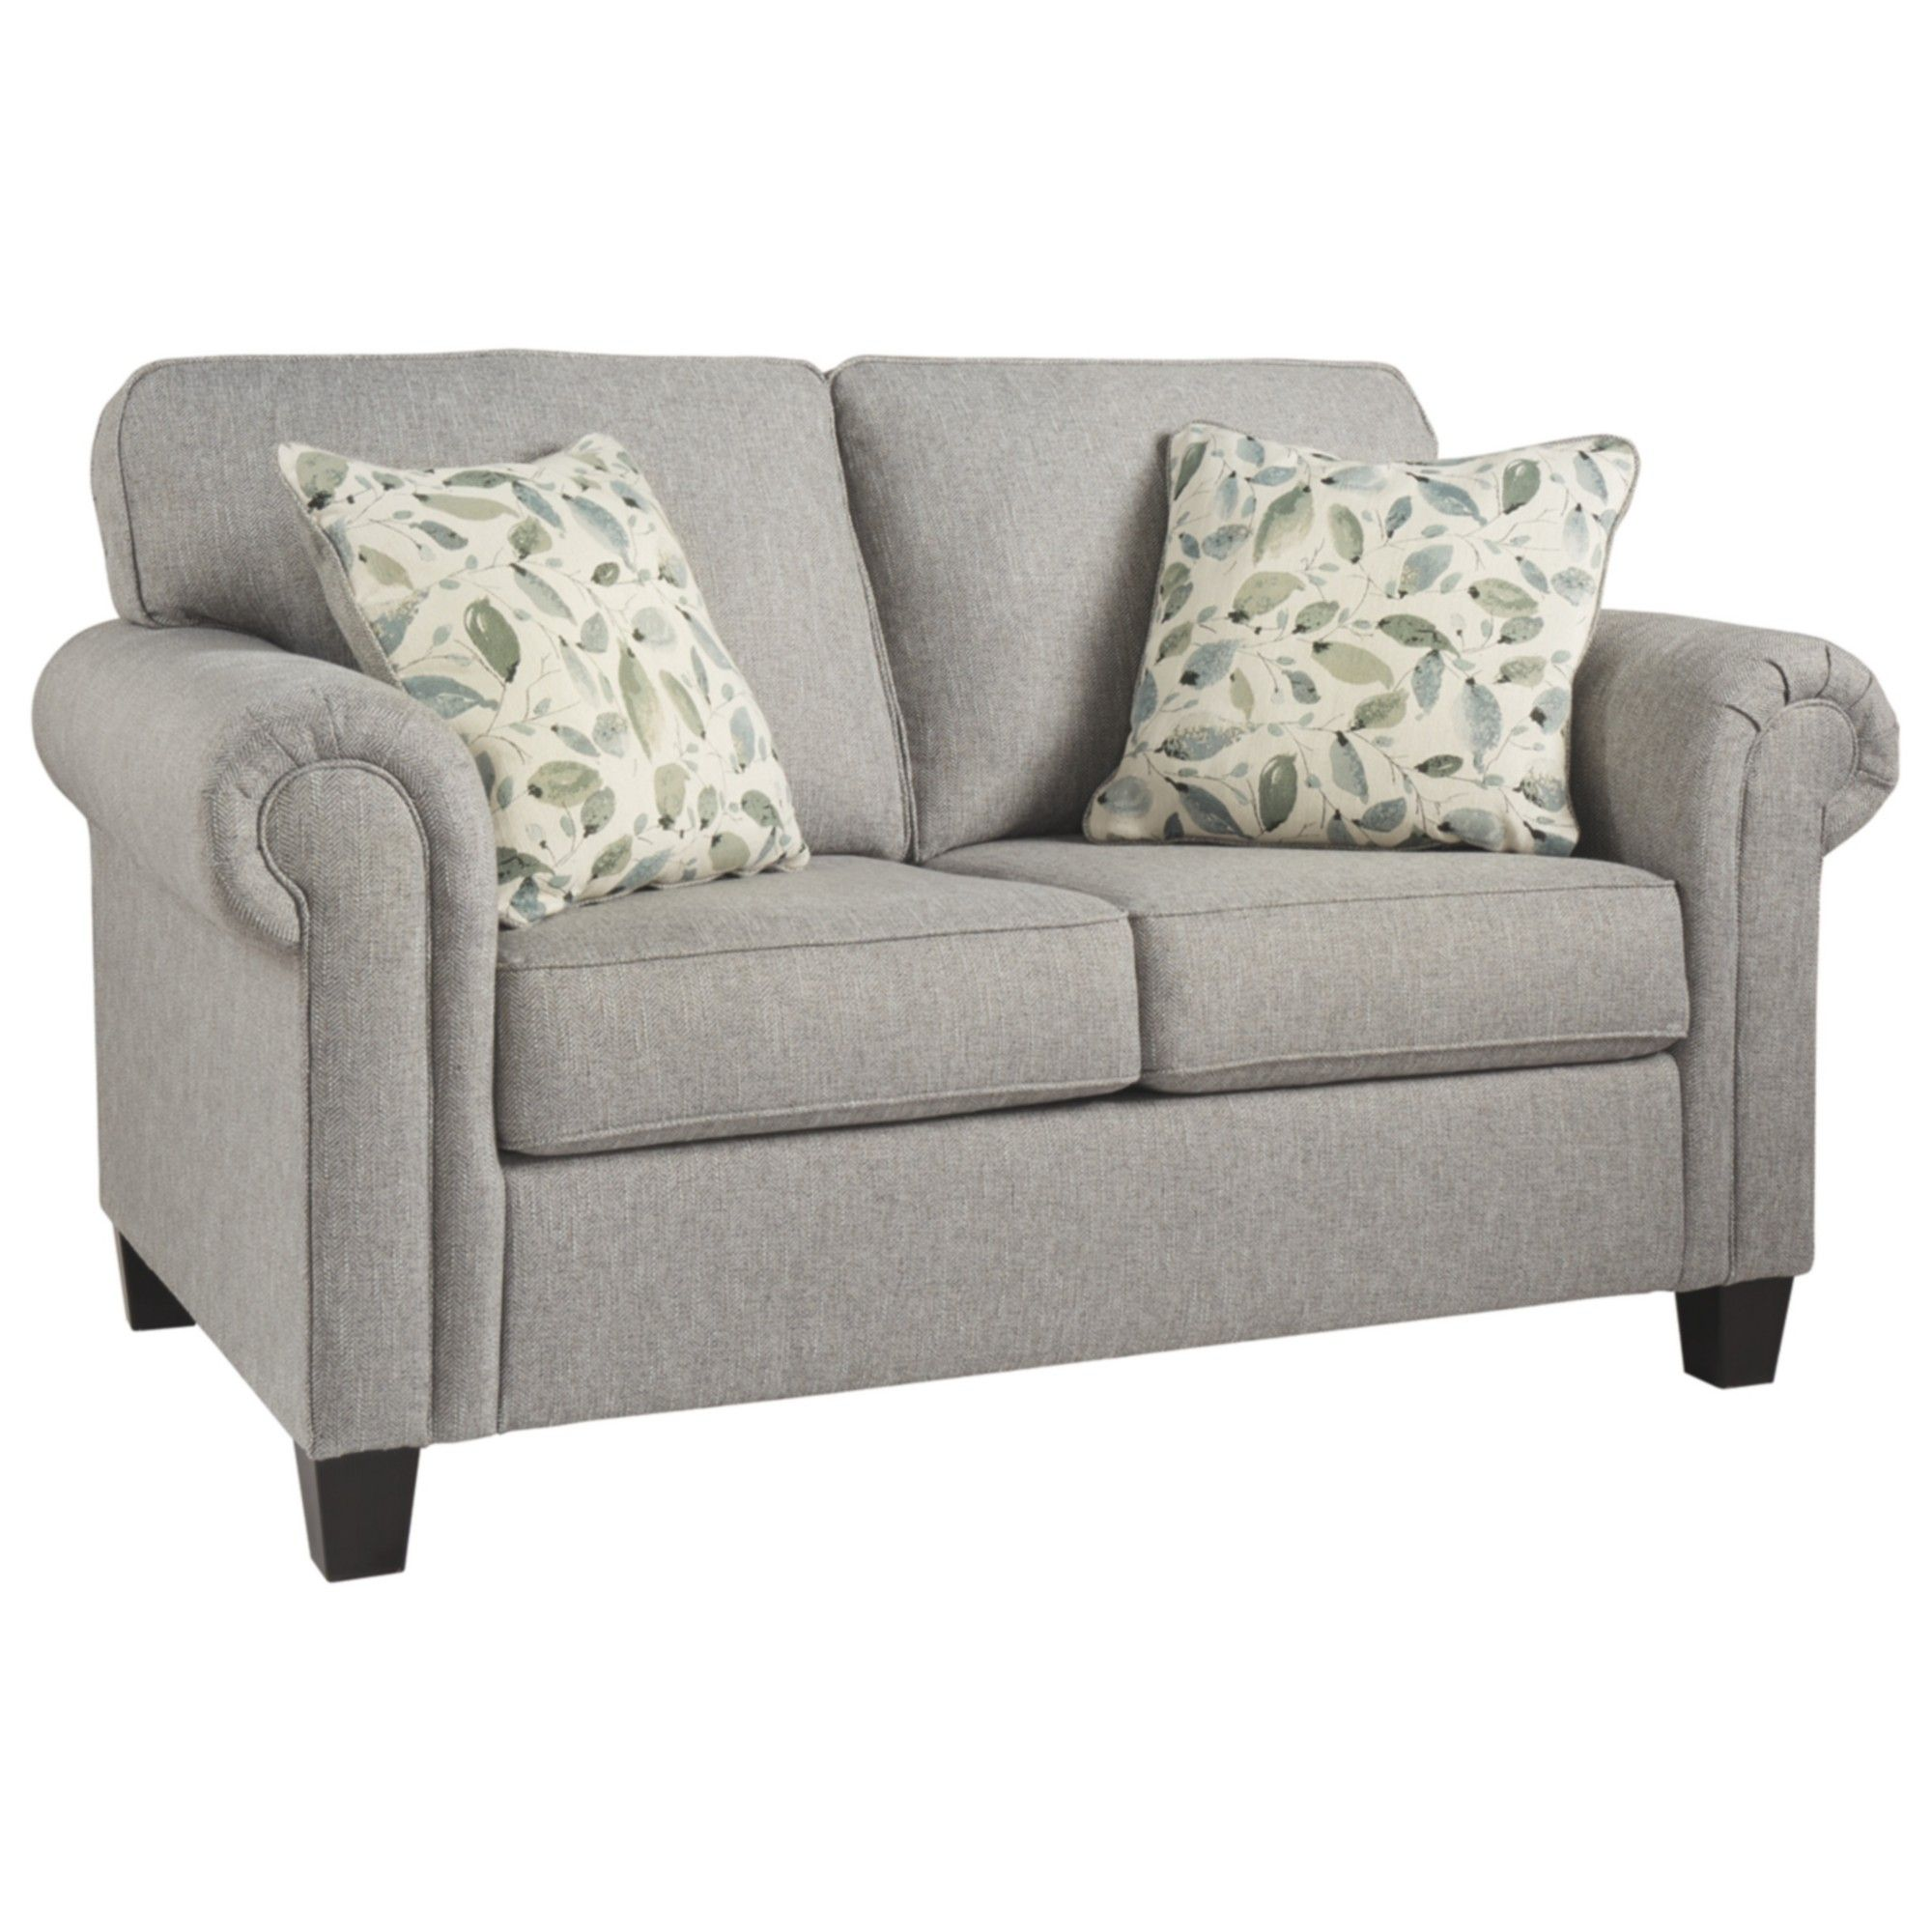 Miraculous Alandari Loveseat Gray Signature Design By Ashley In 2019 Complete Home Design Collection Papxelindsey Bellcom